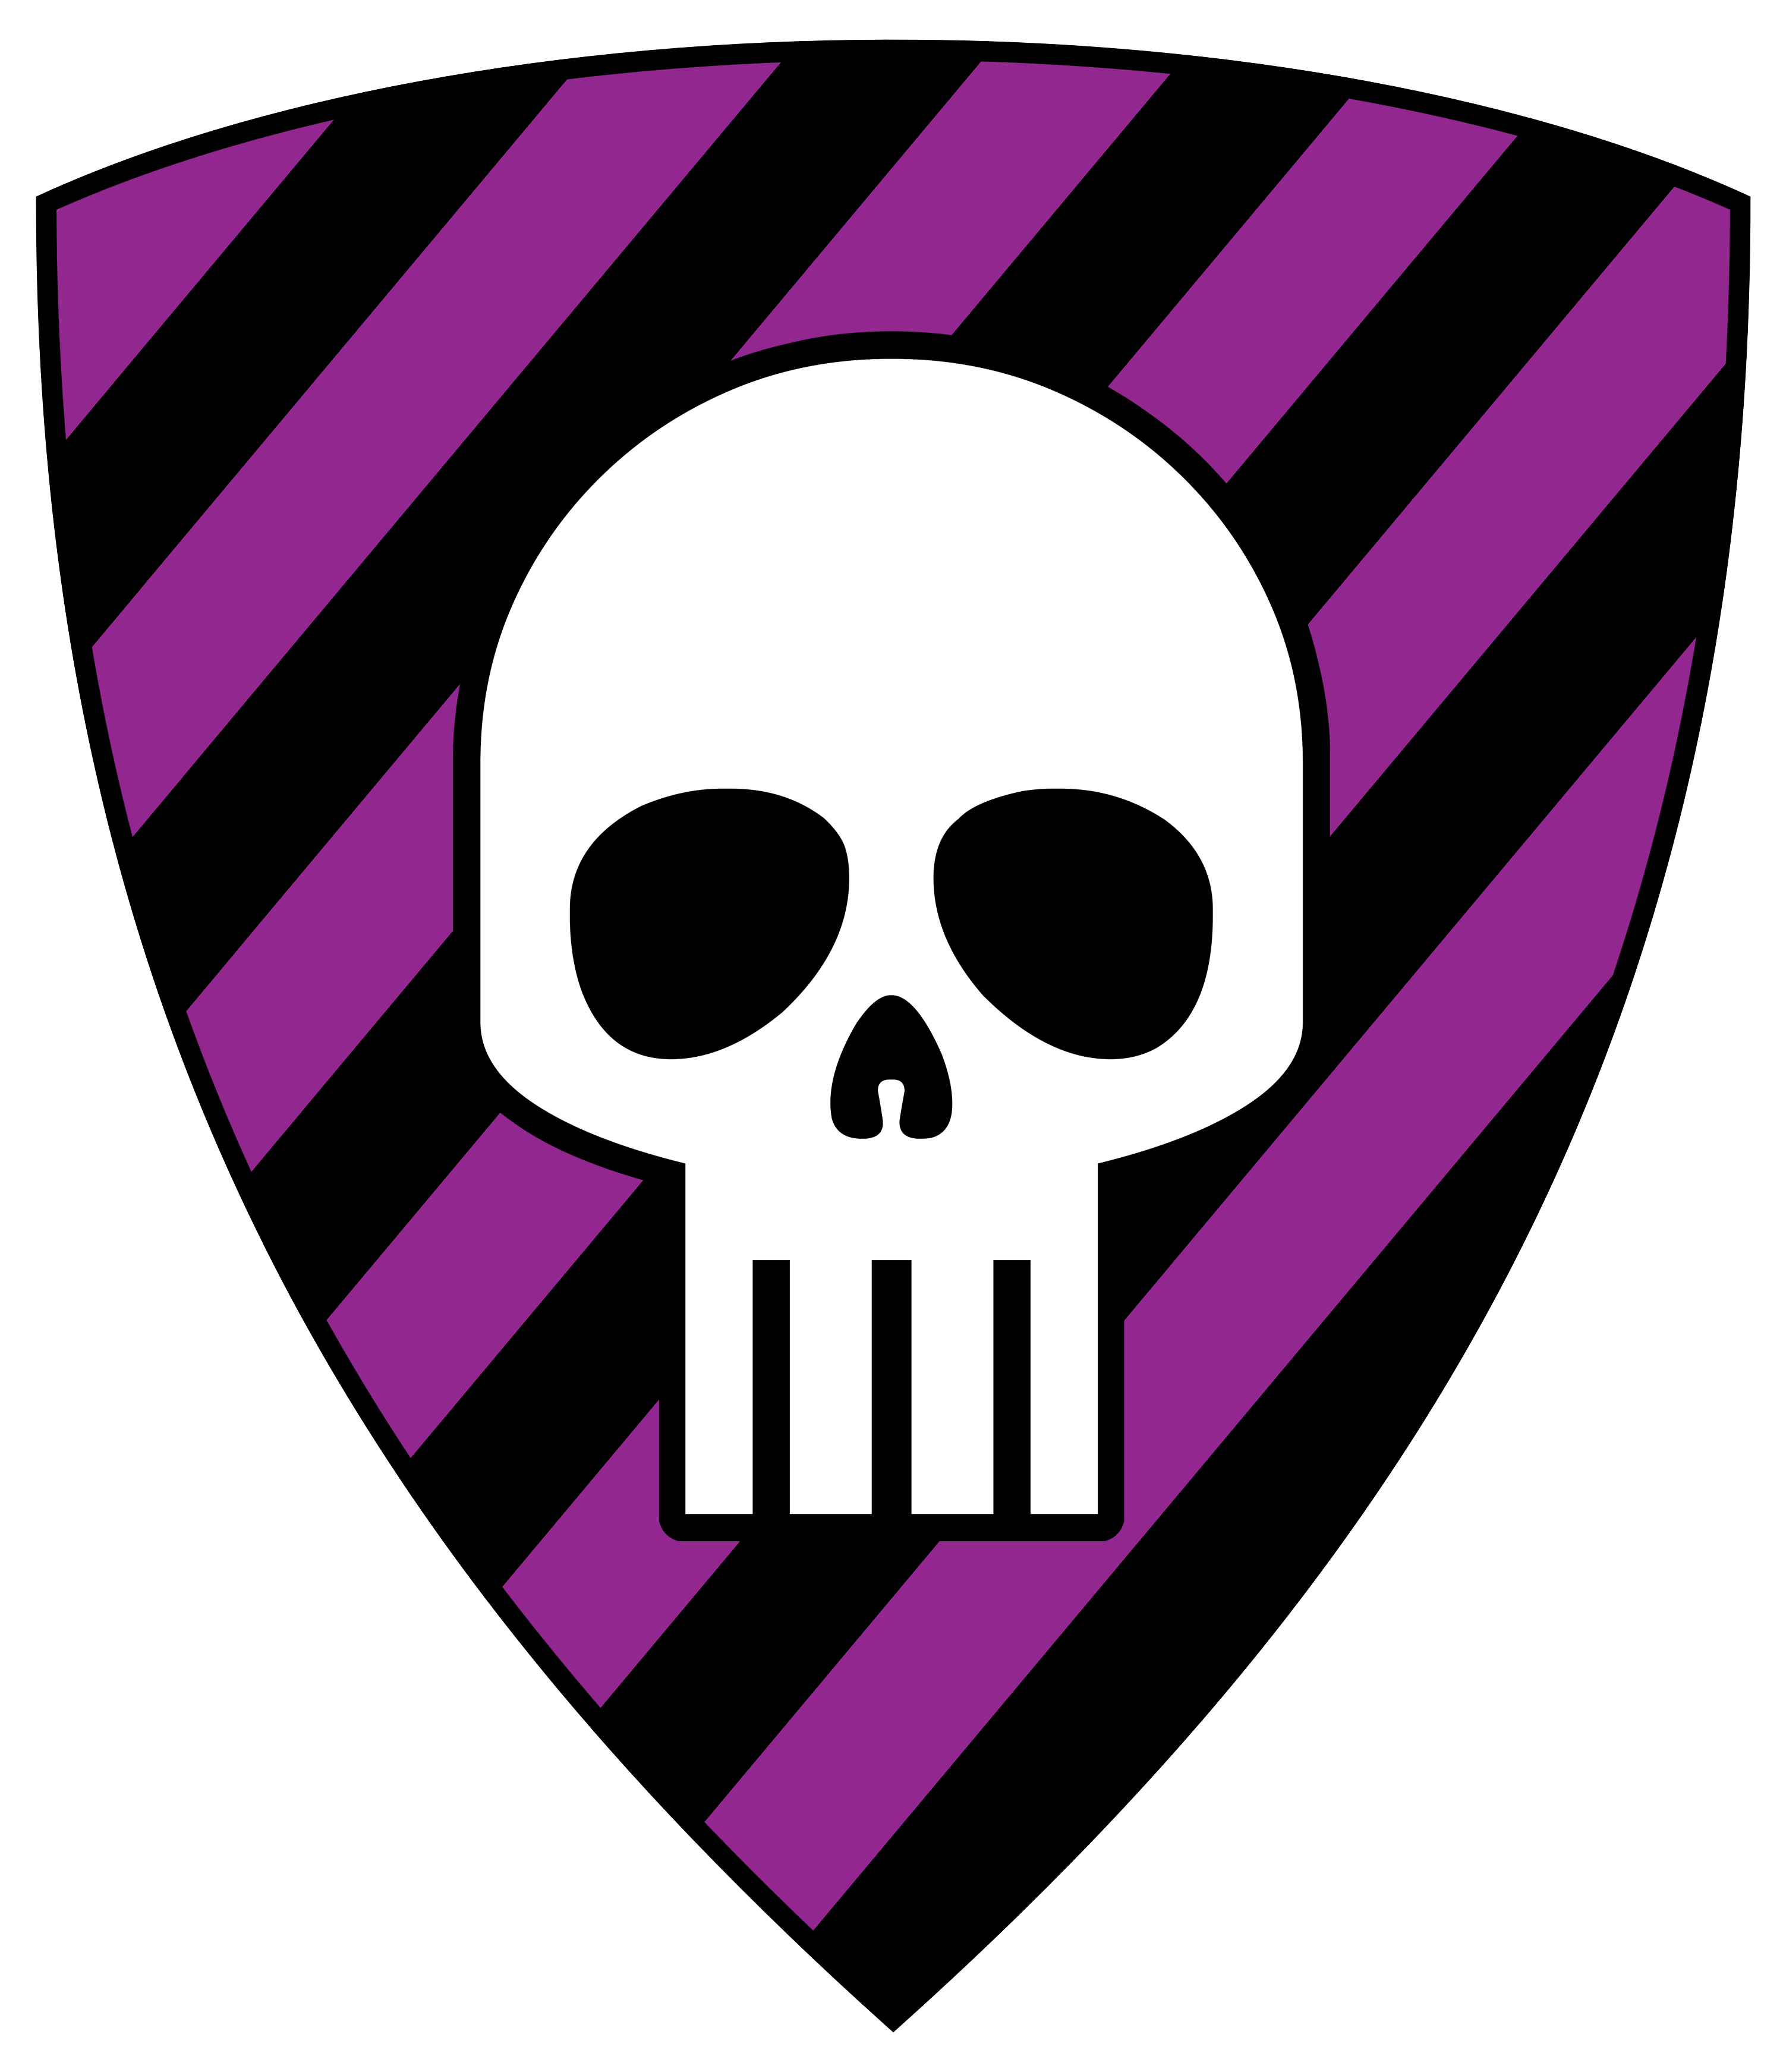 Coat of Arms of the Phantom Rider